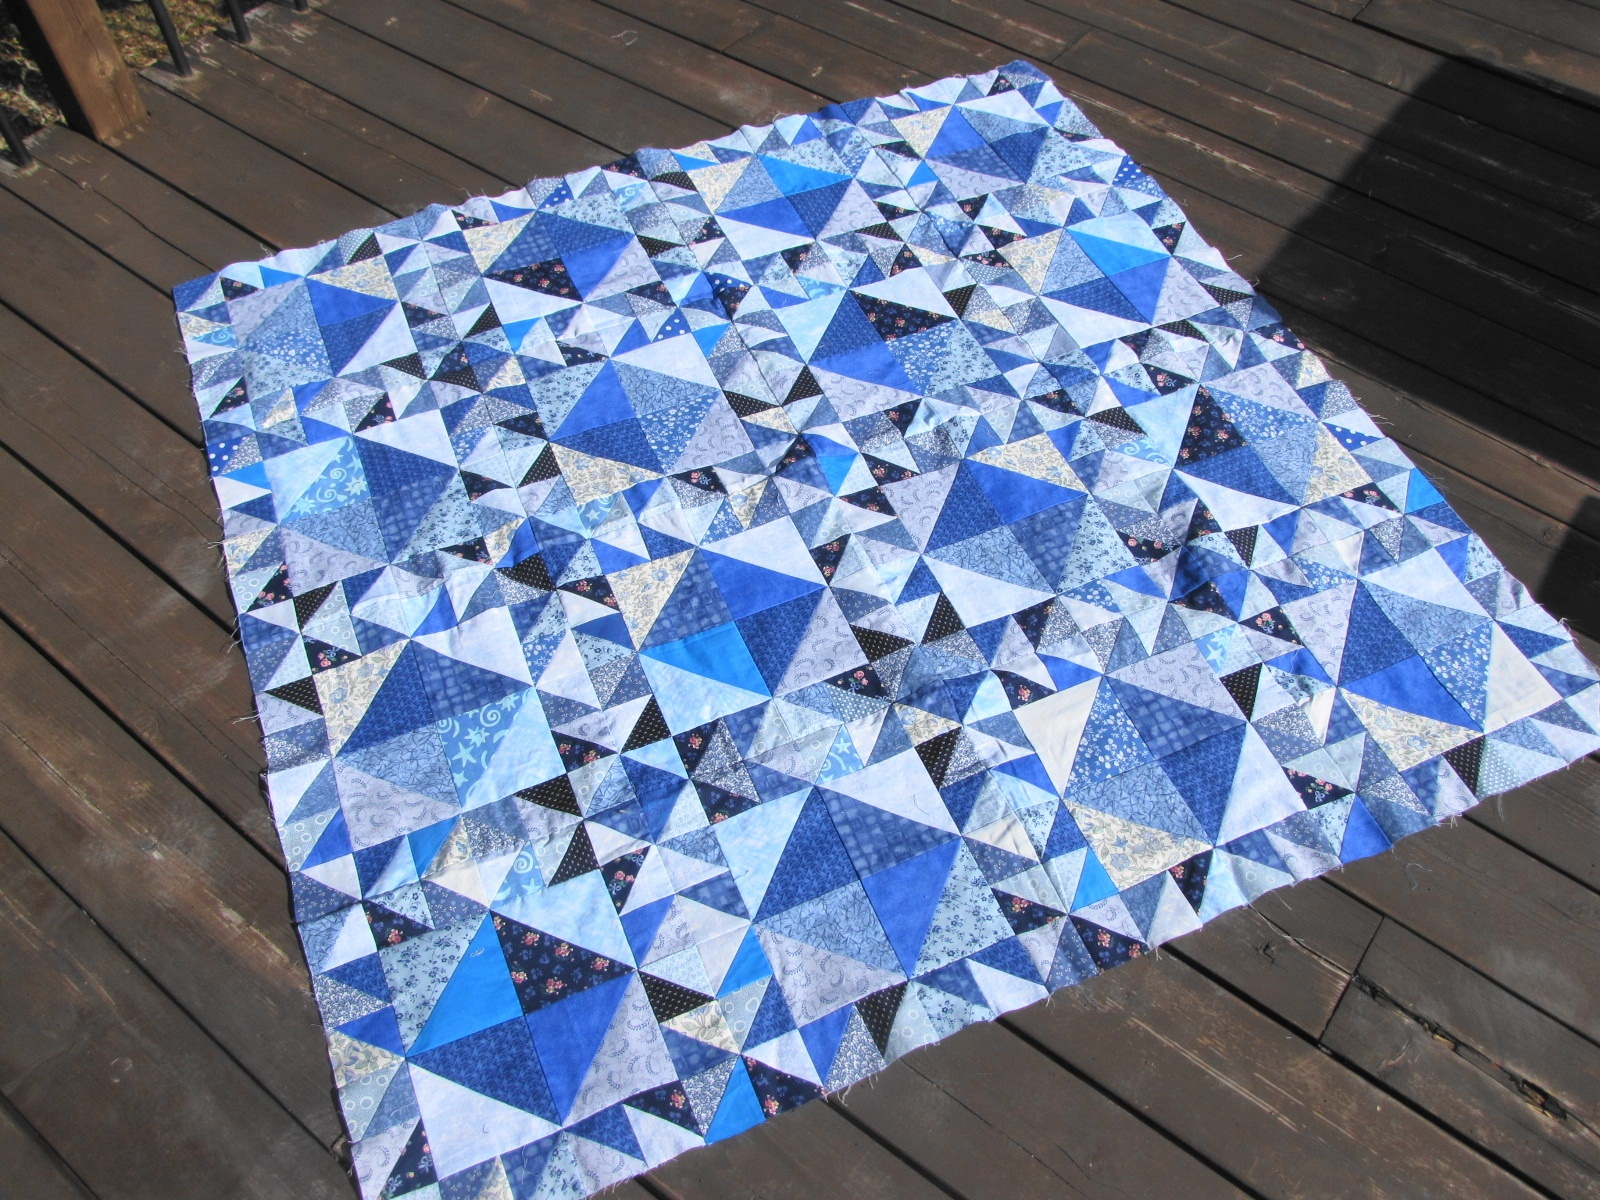 Blue Triangle Quilt Artisan In The Woods